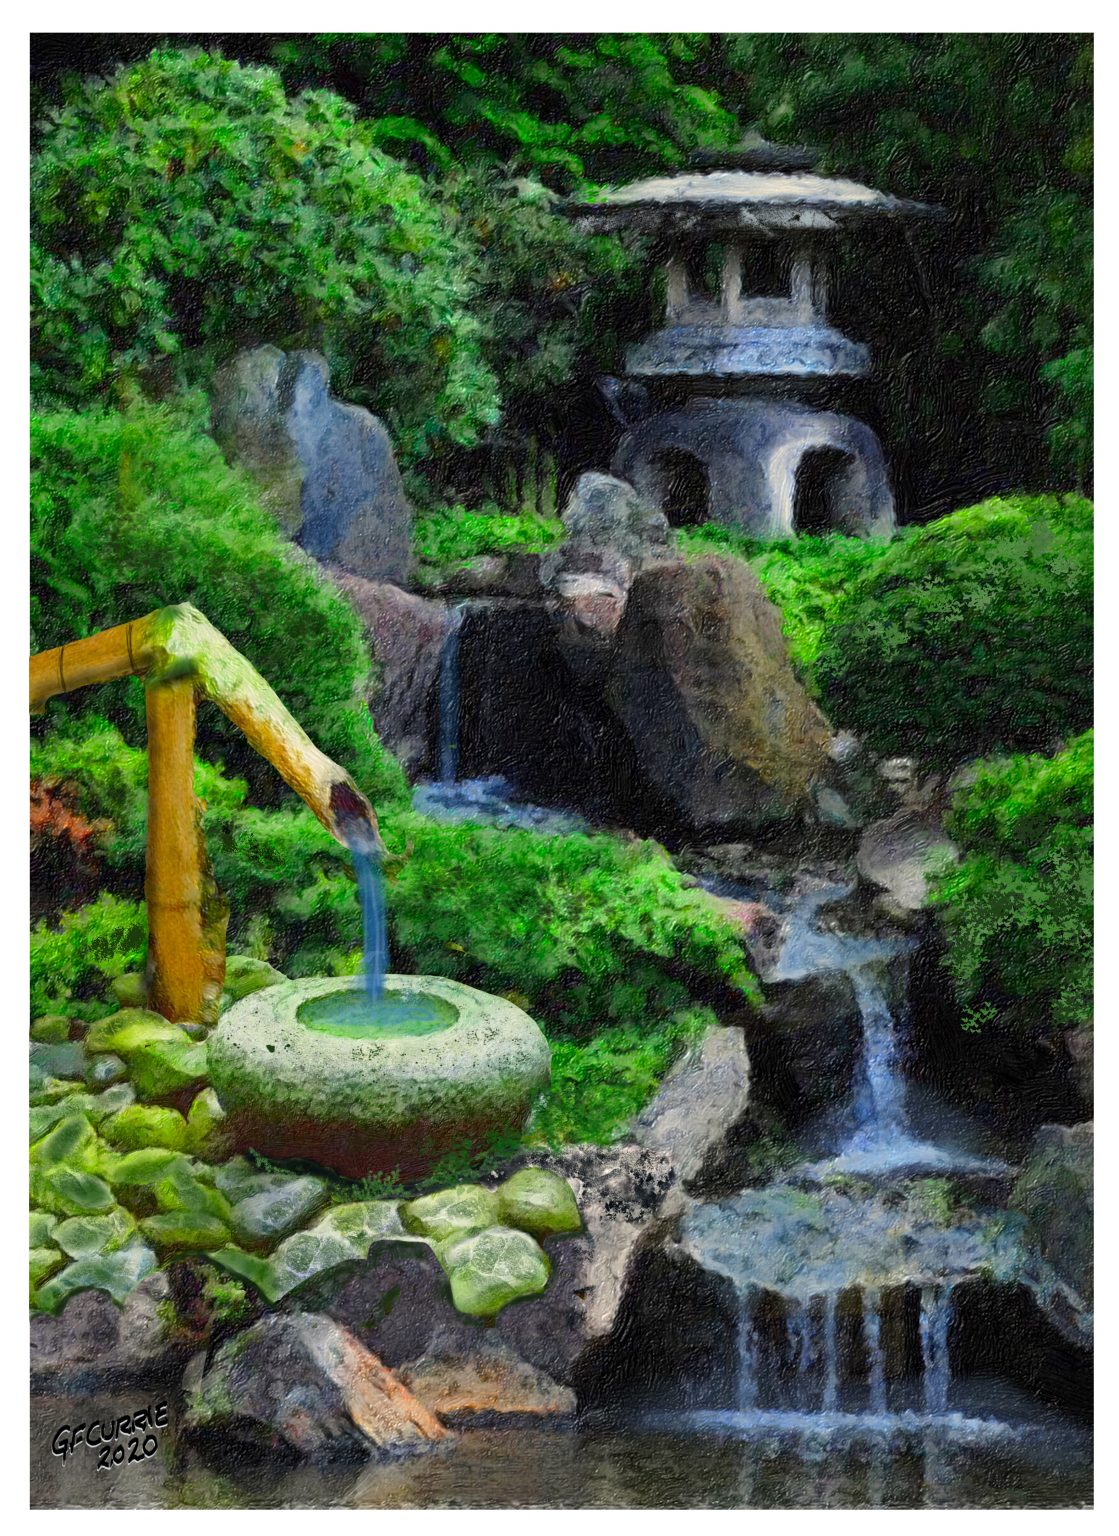 Japanese Waterfall and Bowl